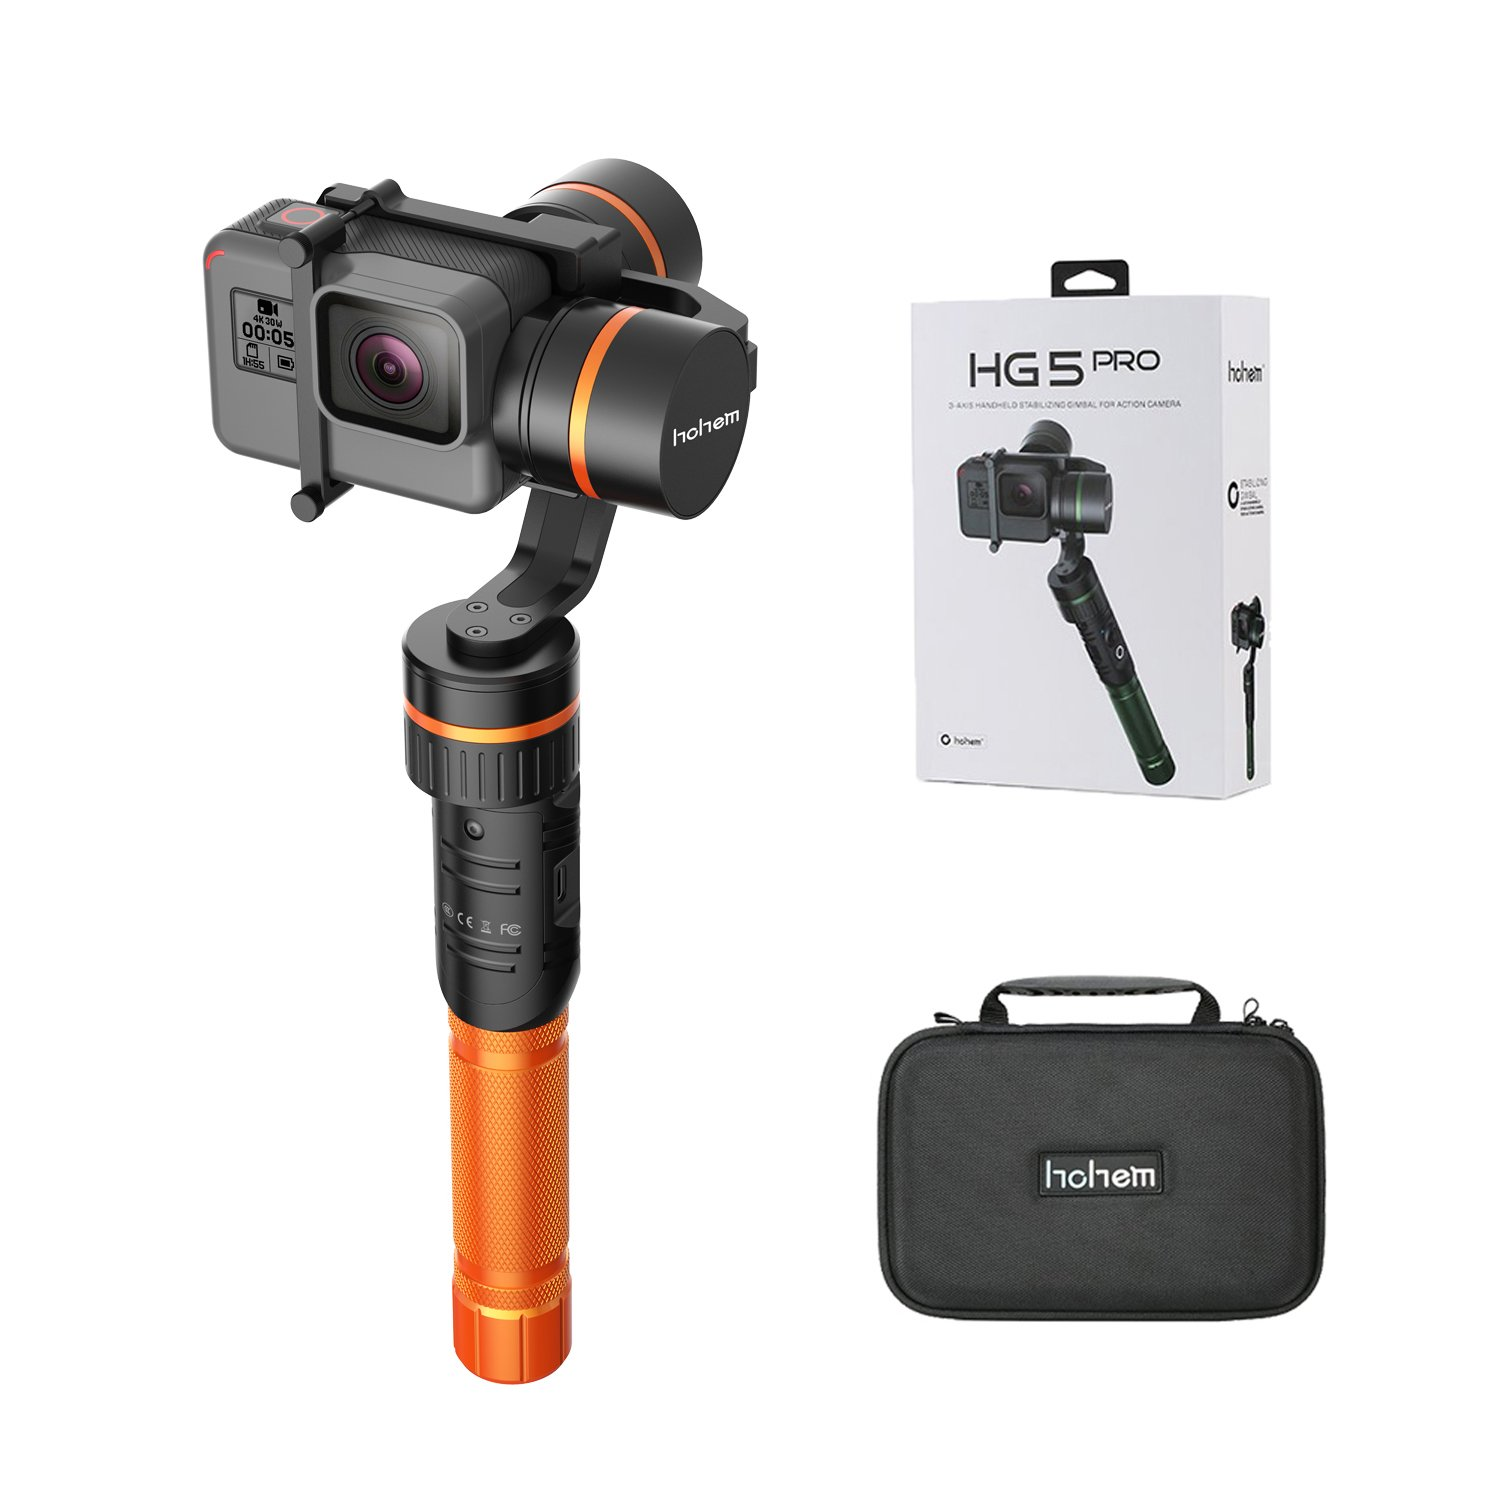 HOHEM HG5 3-Axis Handheld Aluminum Gimbal Stabilizer Support APP Wireless Remote Control for GoPro Hero5 Hero4 Xiaomi Yi 4K and Other Action Cameras with Similar Dimensions (Orange) by HOHEM